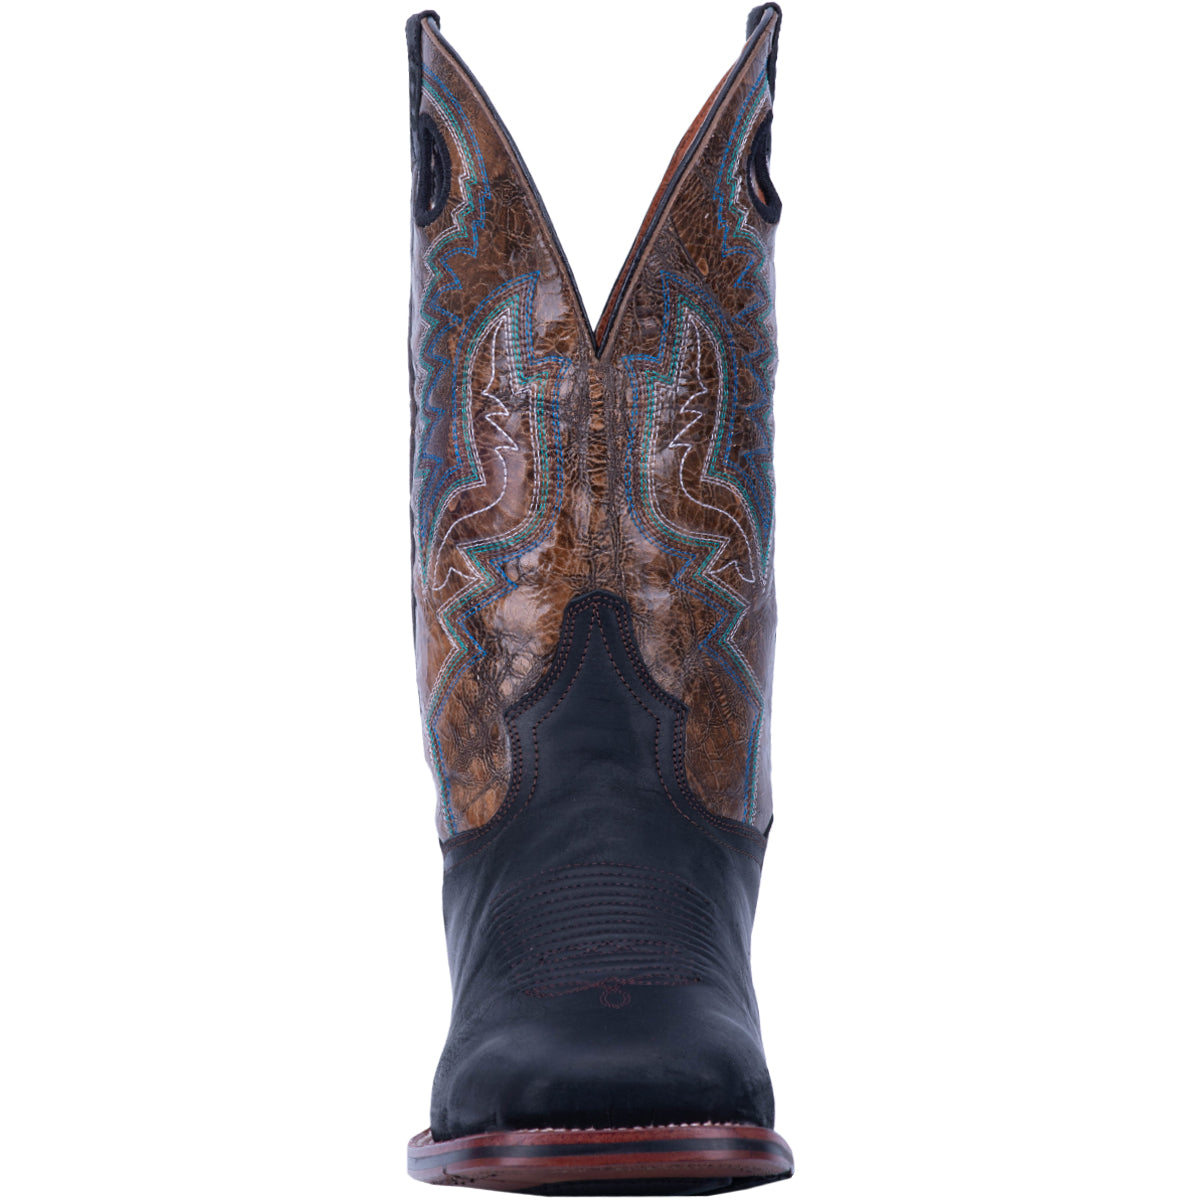 DEUCE LEATHER BOOT 11825131552810